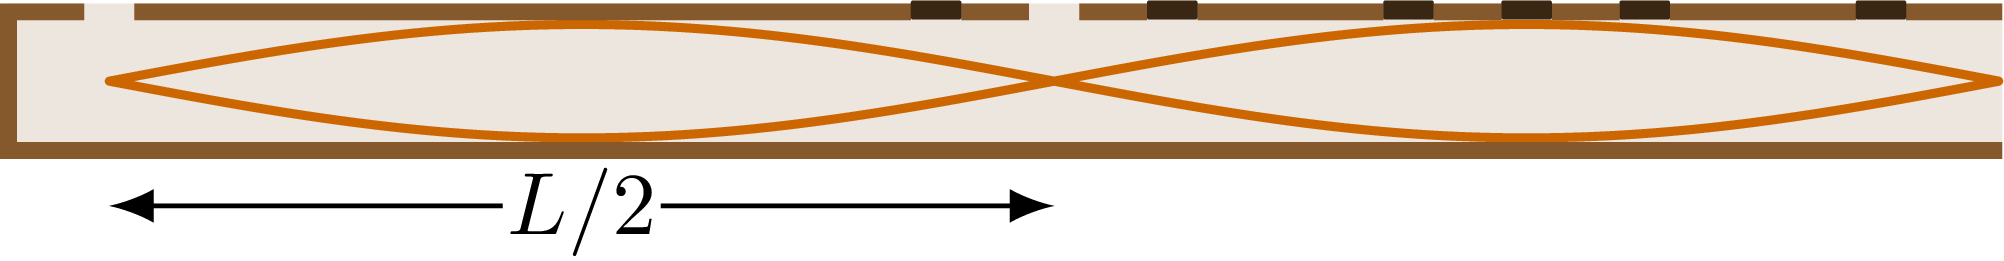 waves_standing_flute-002.png